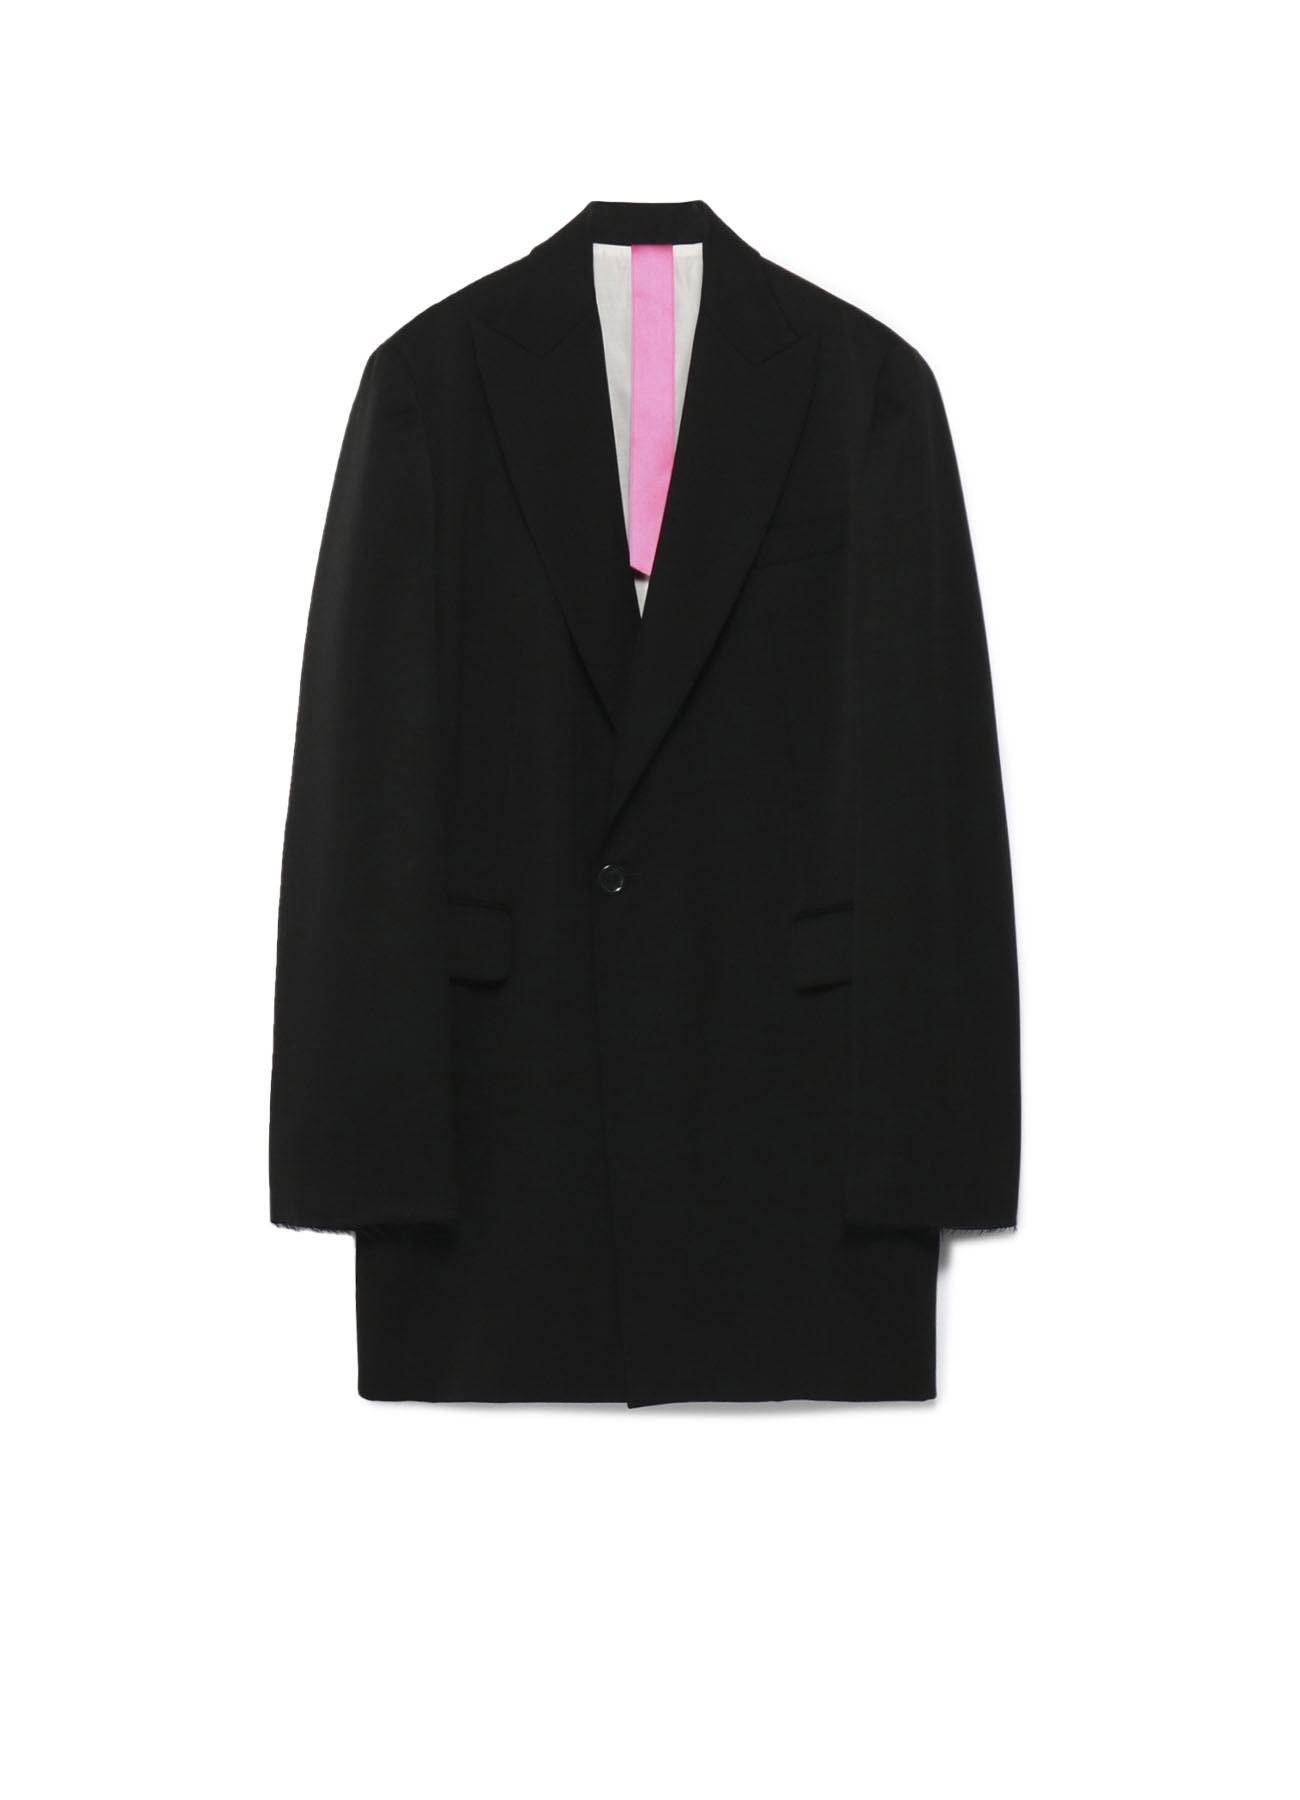 Y'sPINK TUXEDO CLOTH TAILORED JACKET